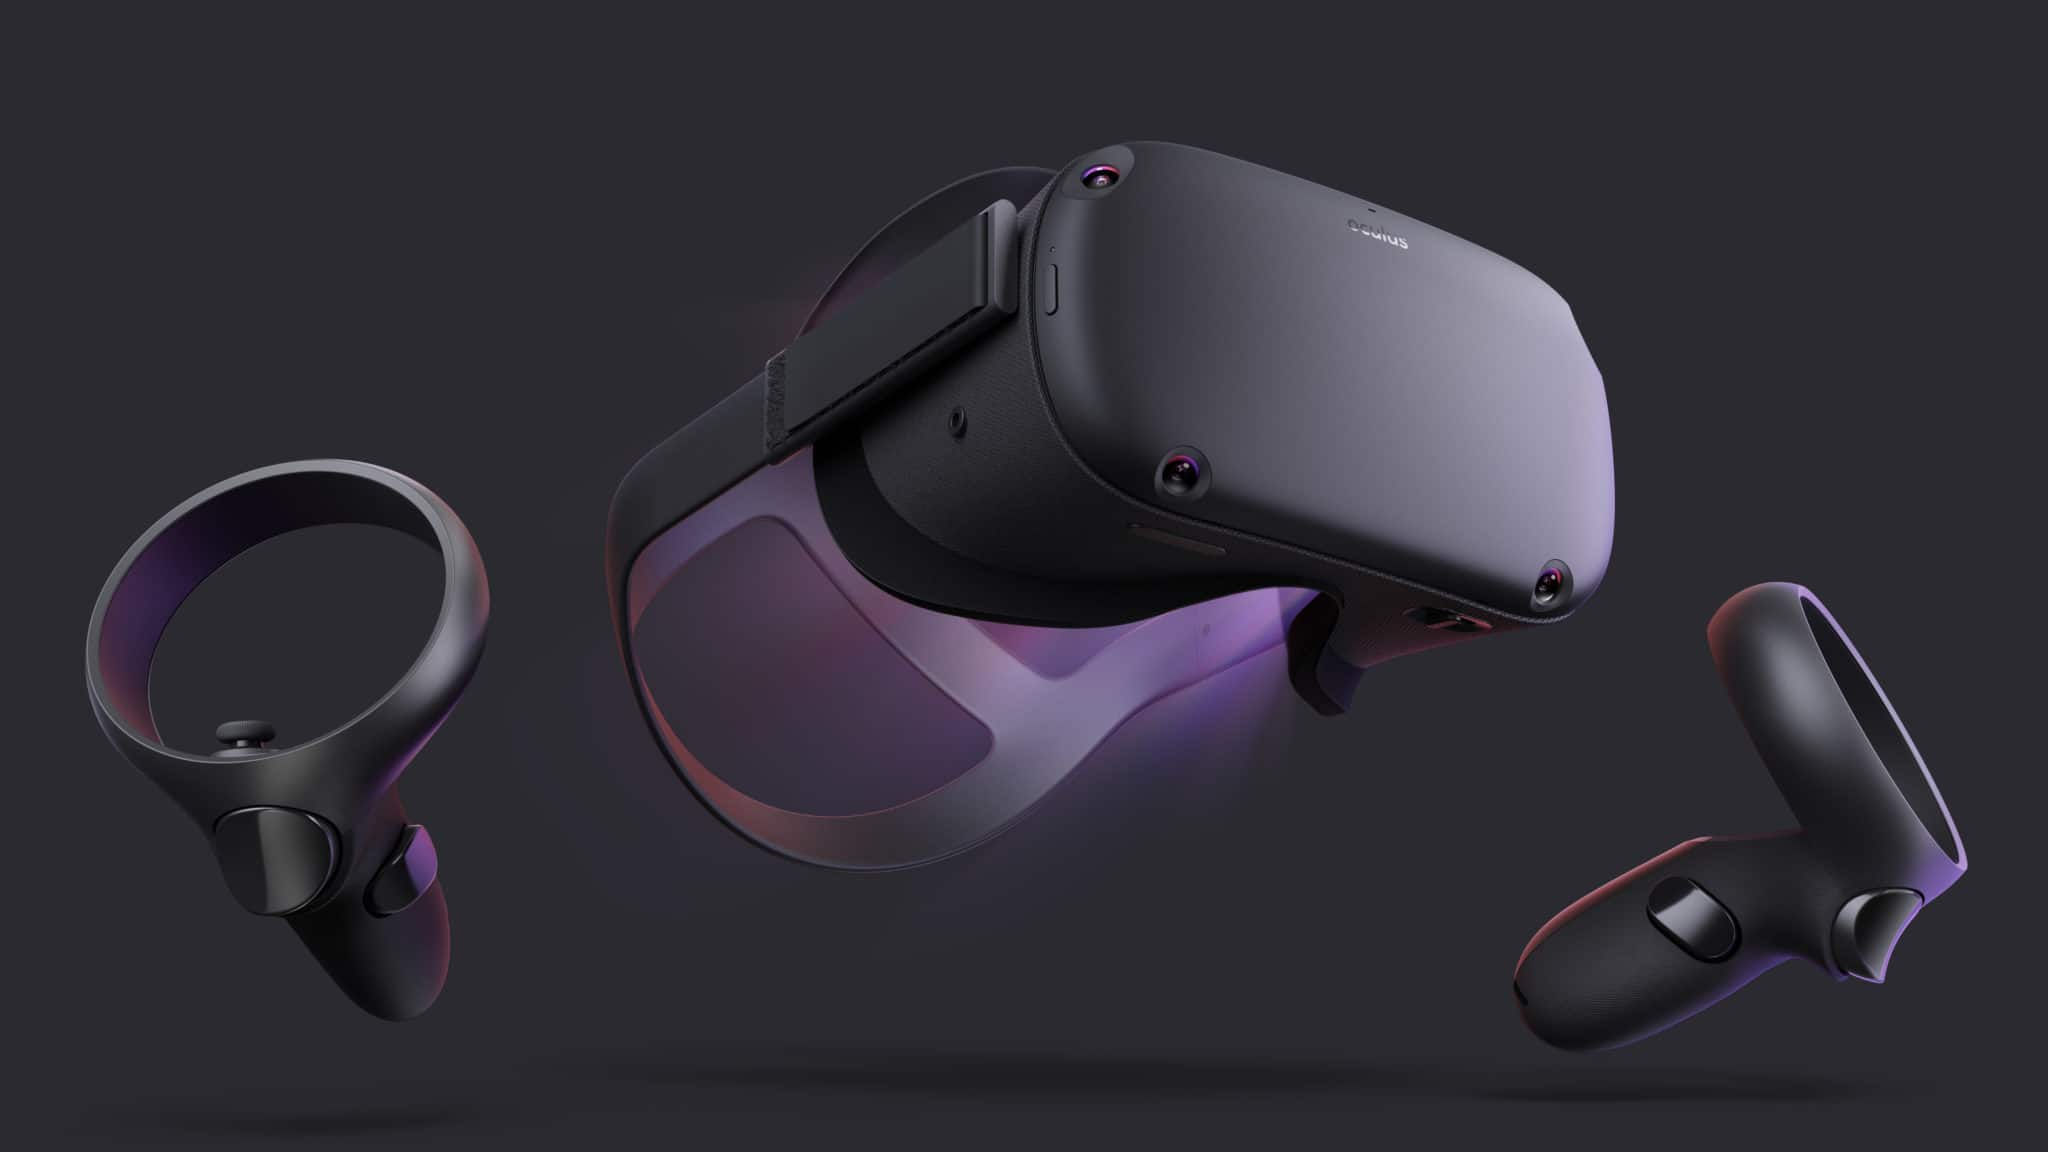 oculus quest standalone vr headset